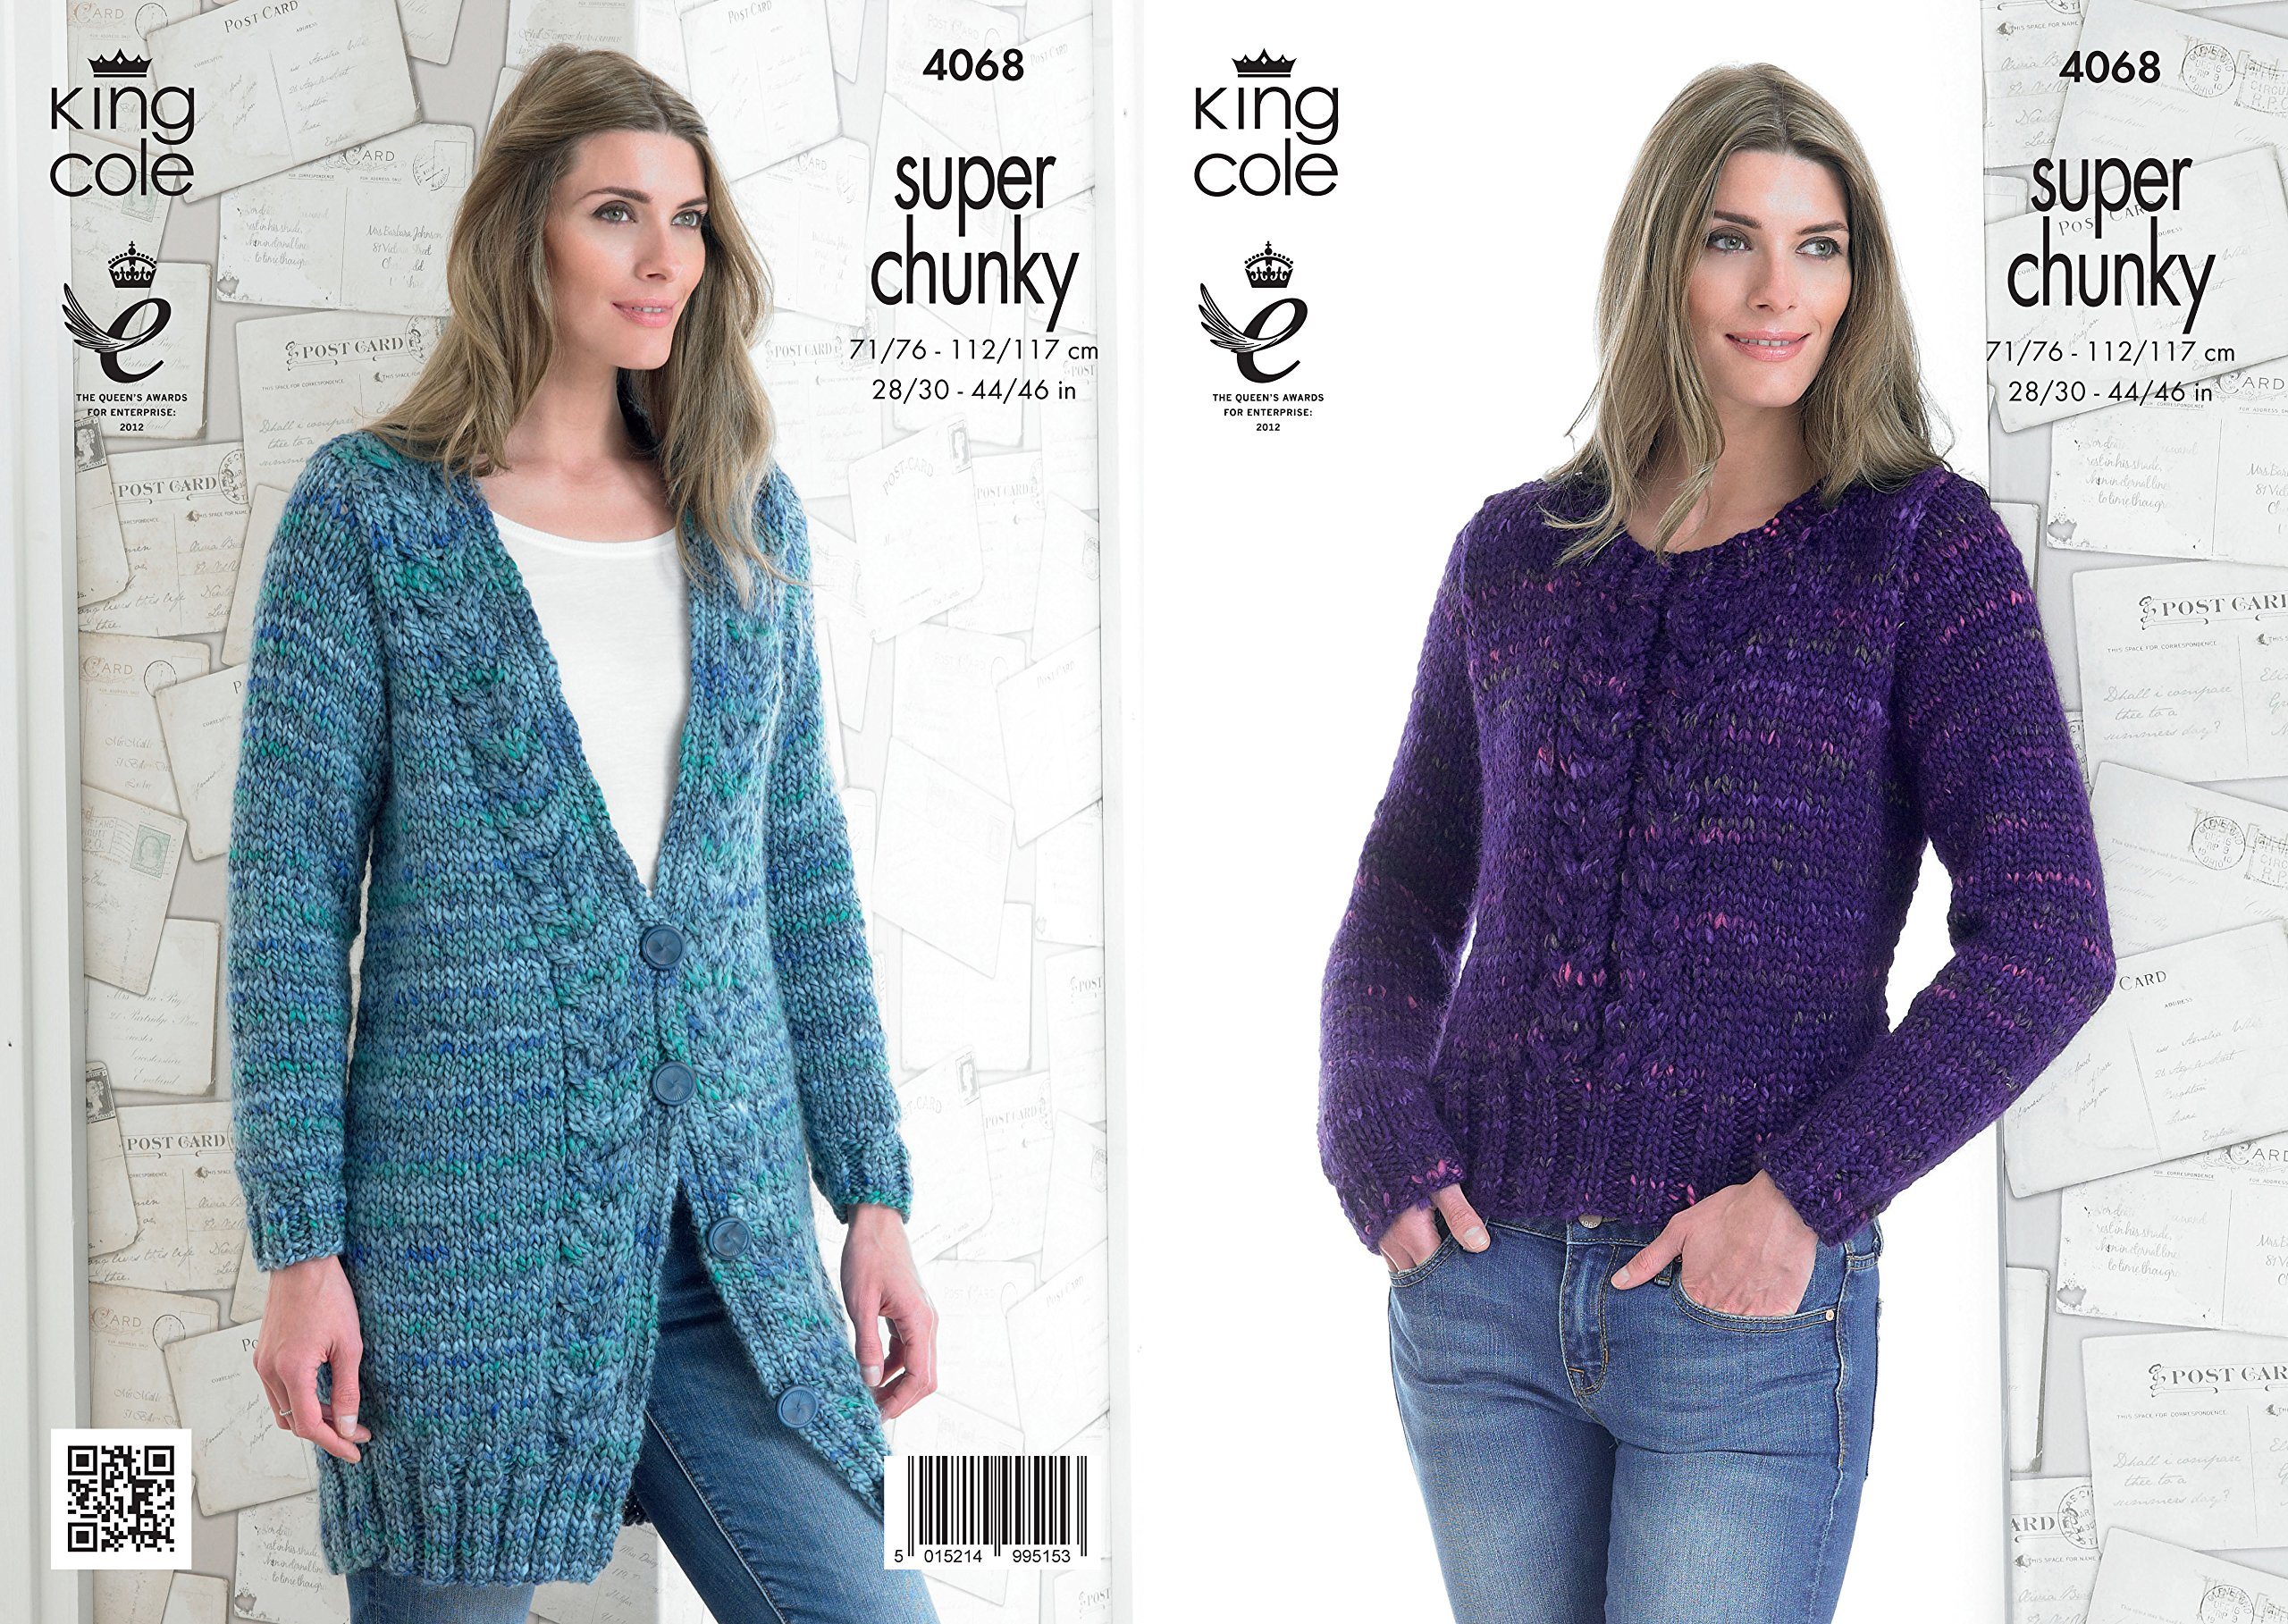 King Cole Ladies Gypsy Super Chunky Knitting Pattern Womens Cable Knit Sweater & Jacket (4068)